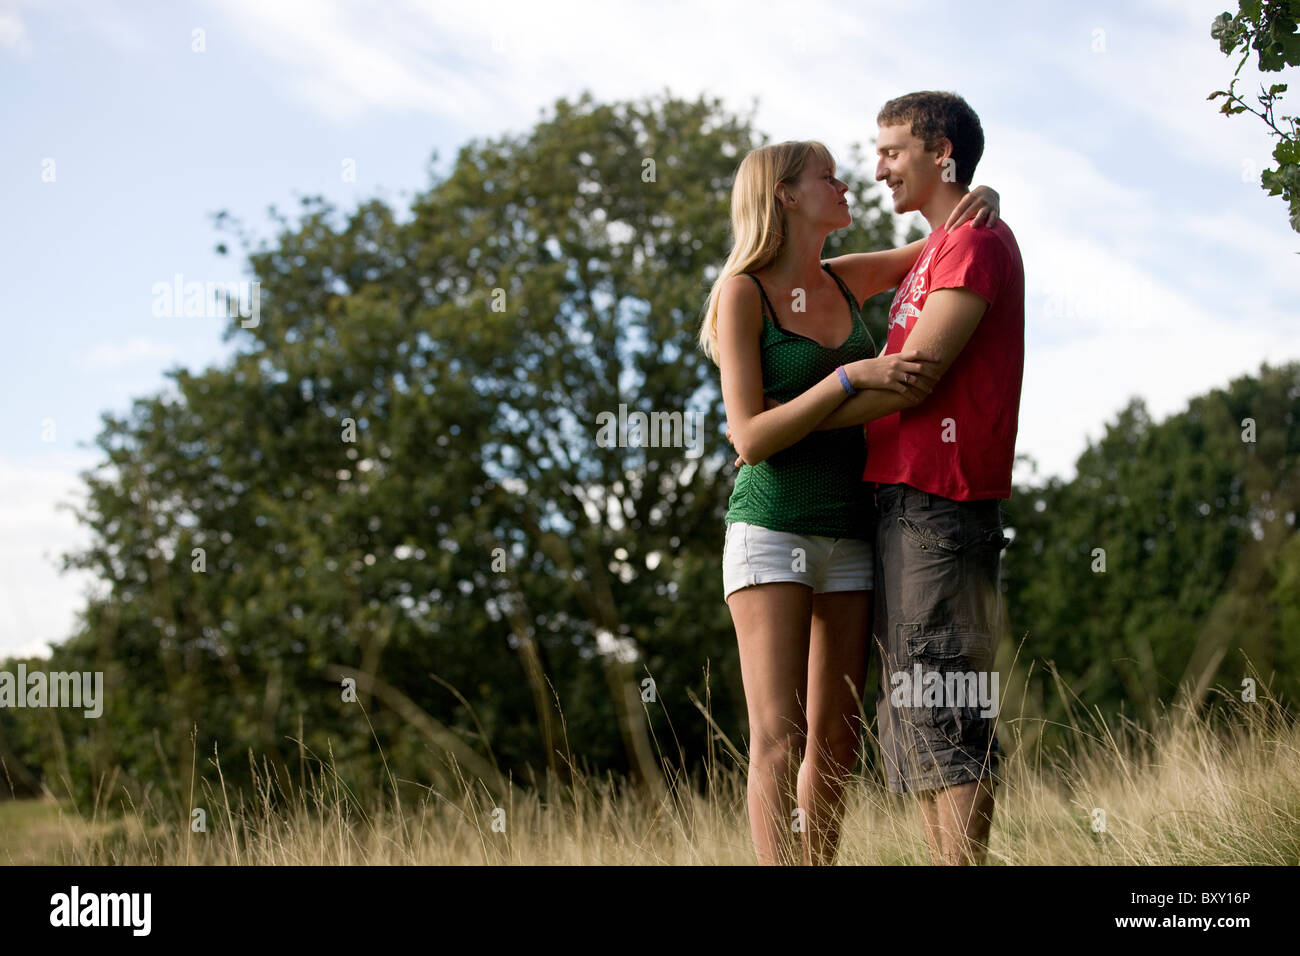 A young couple standing outdoors, embracing - Stock Image